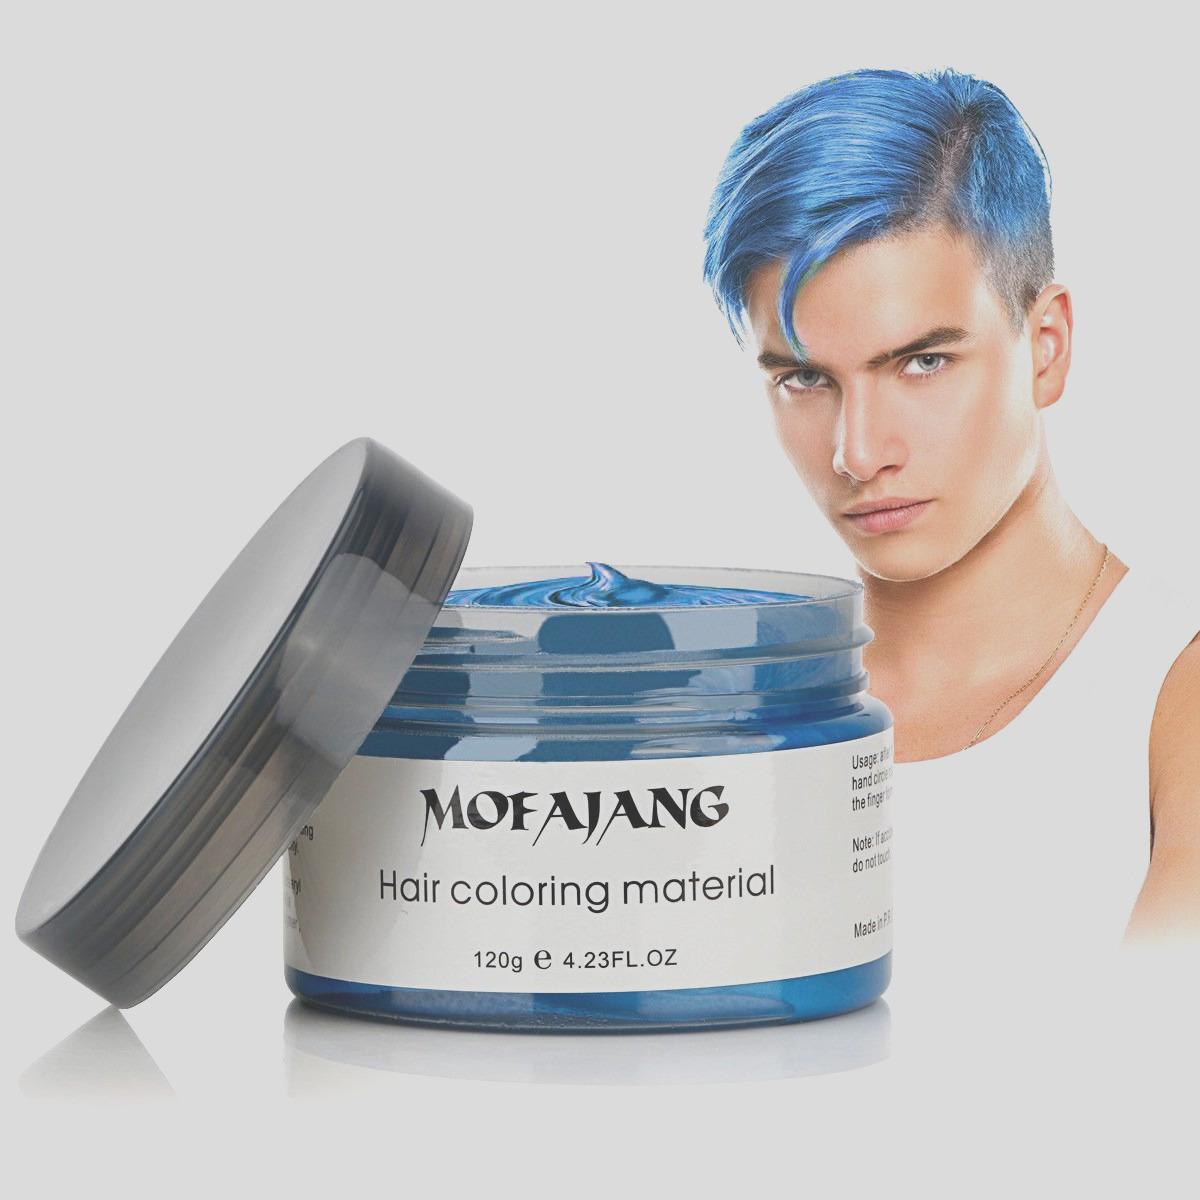 mofajang grey hair dye